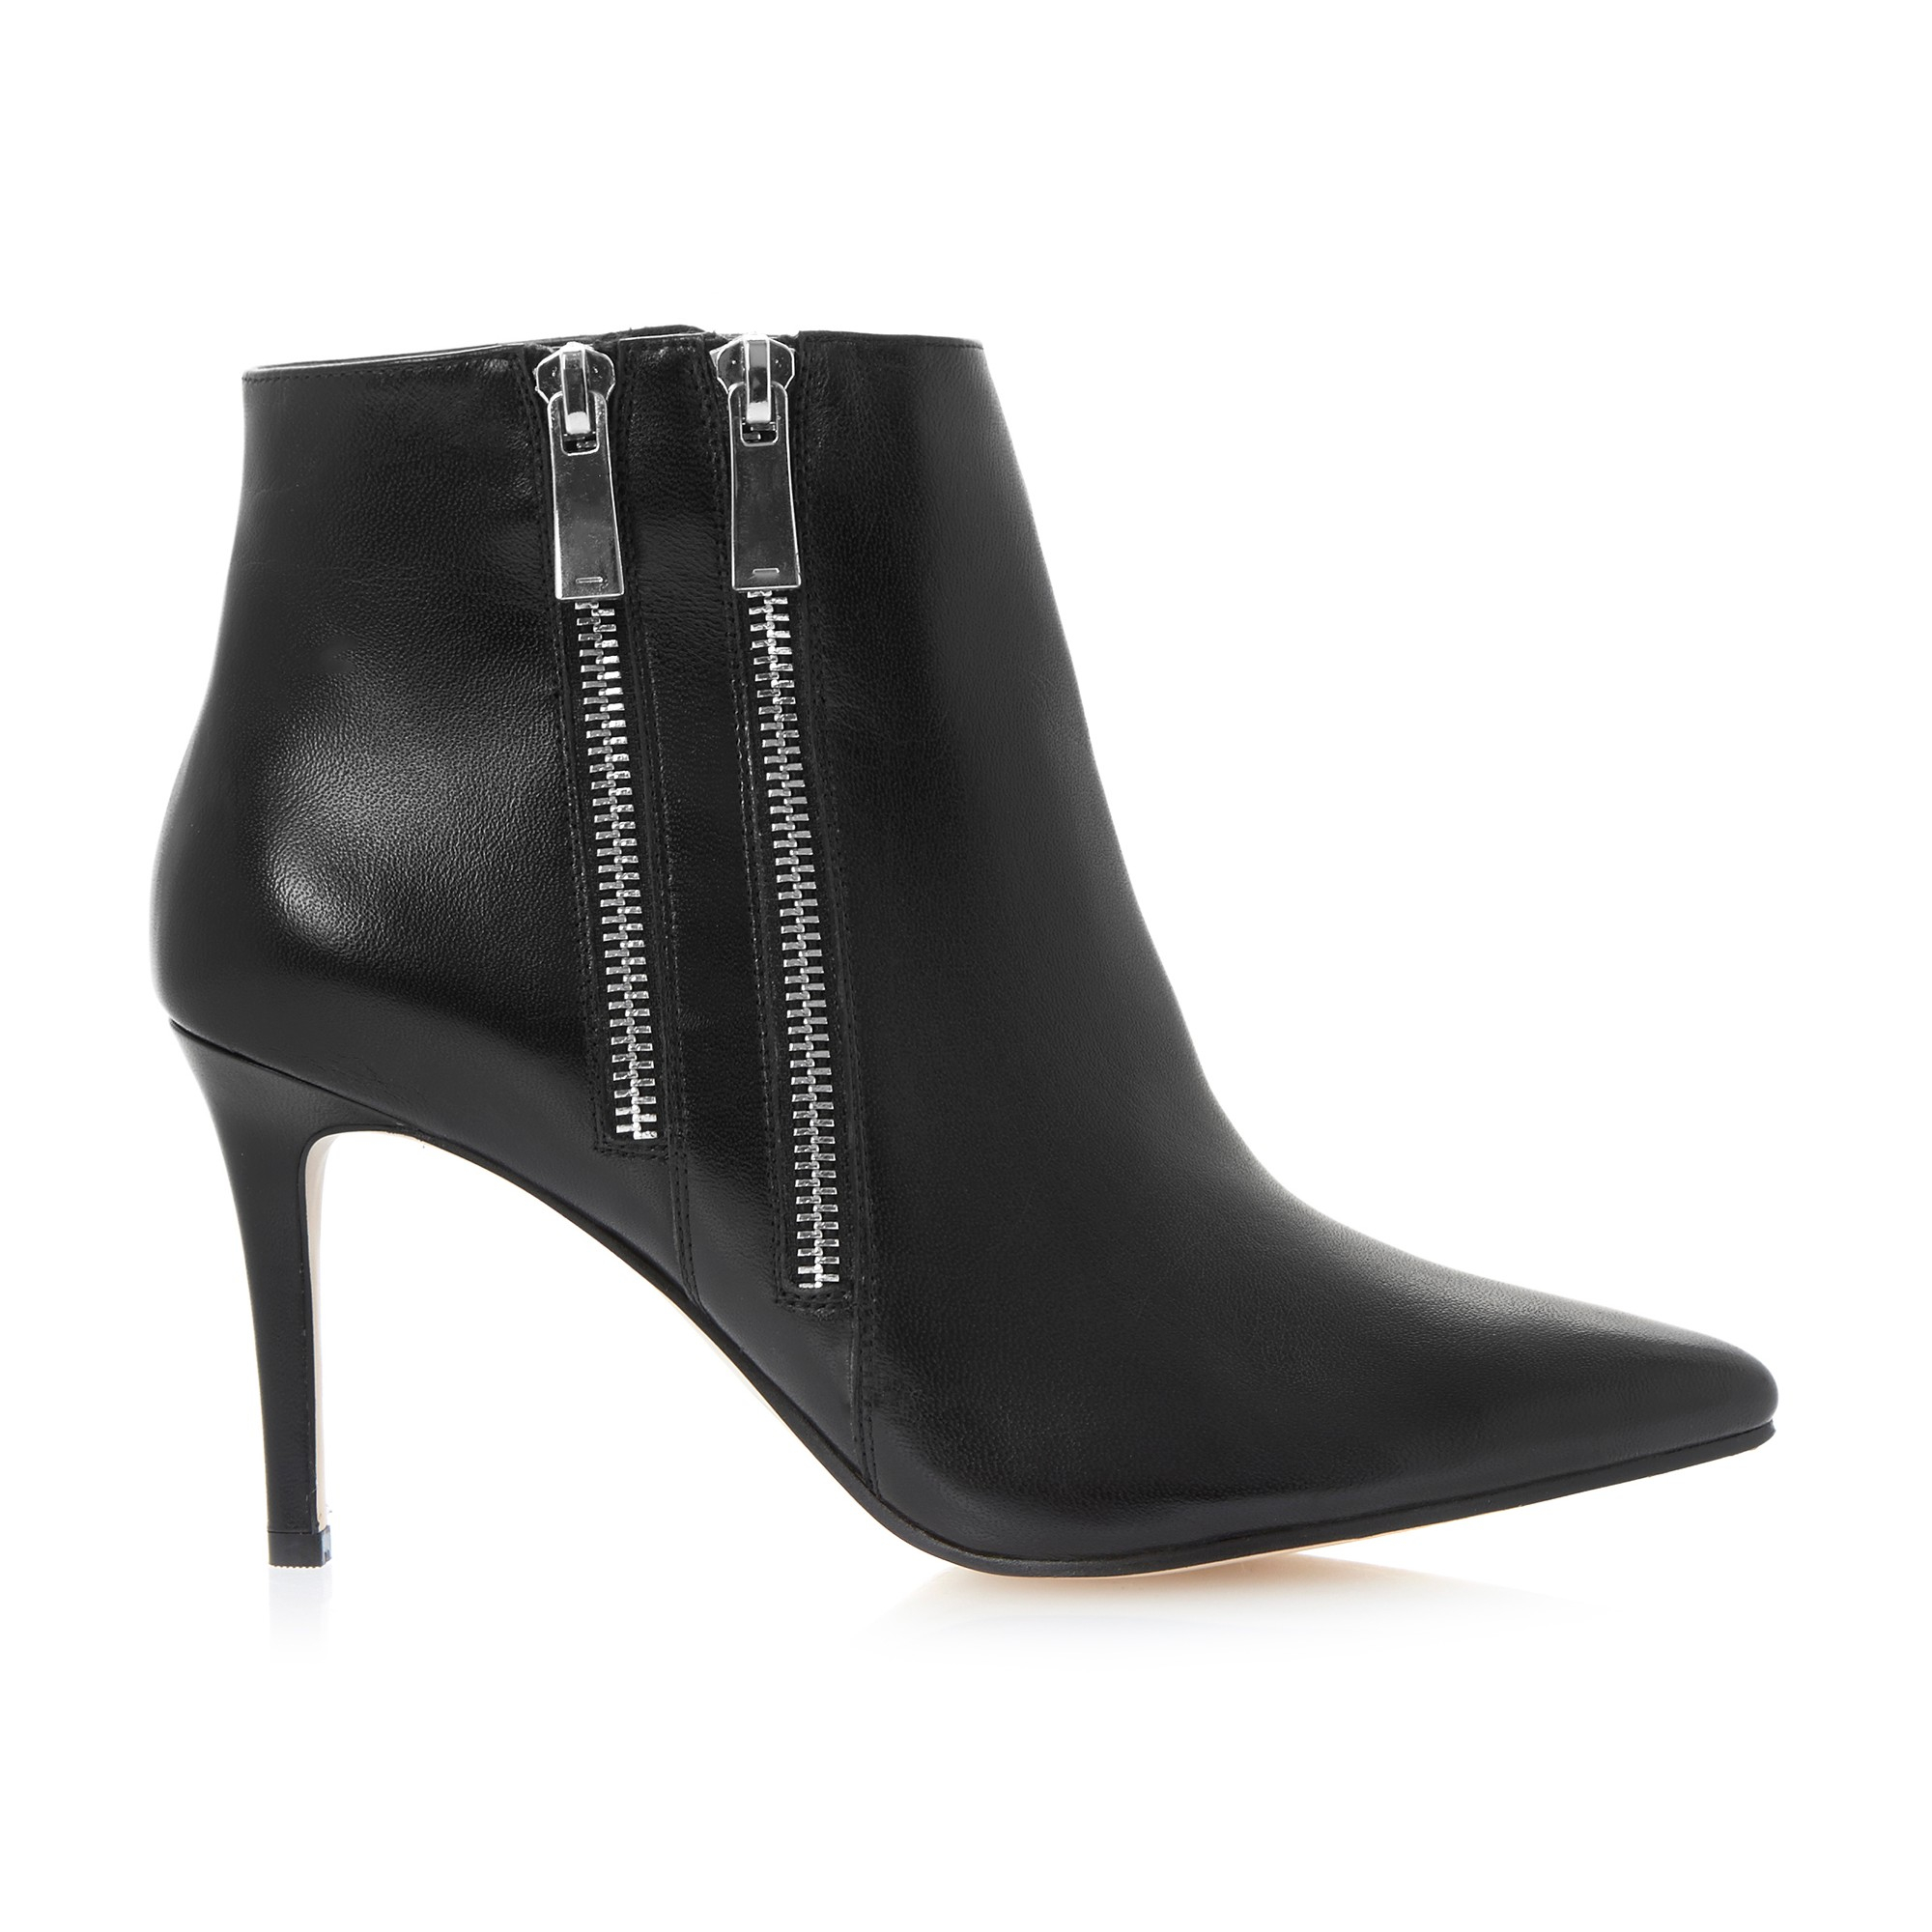 Dune Namedrop Leather Ankle Boots in Black